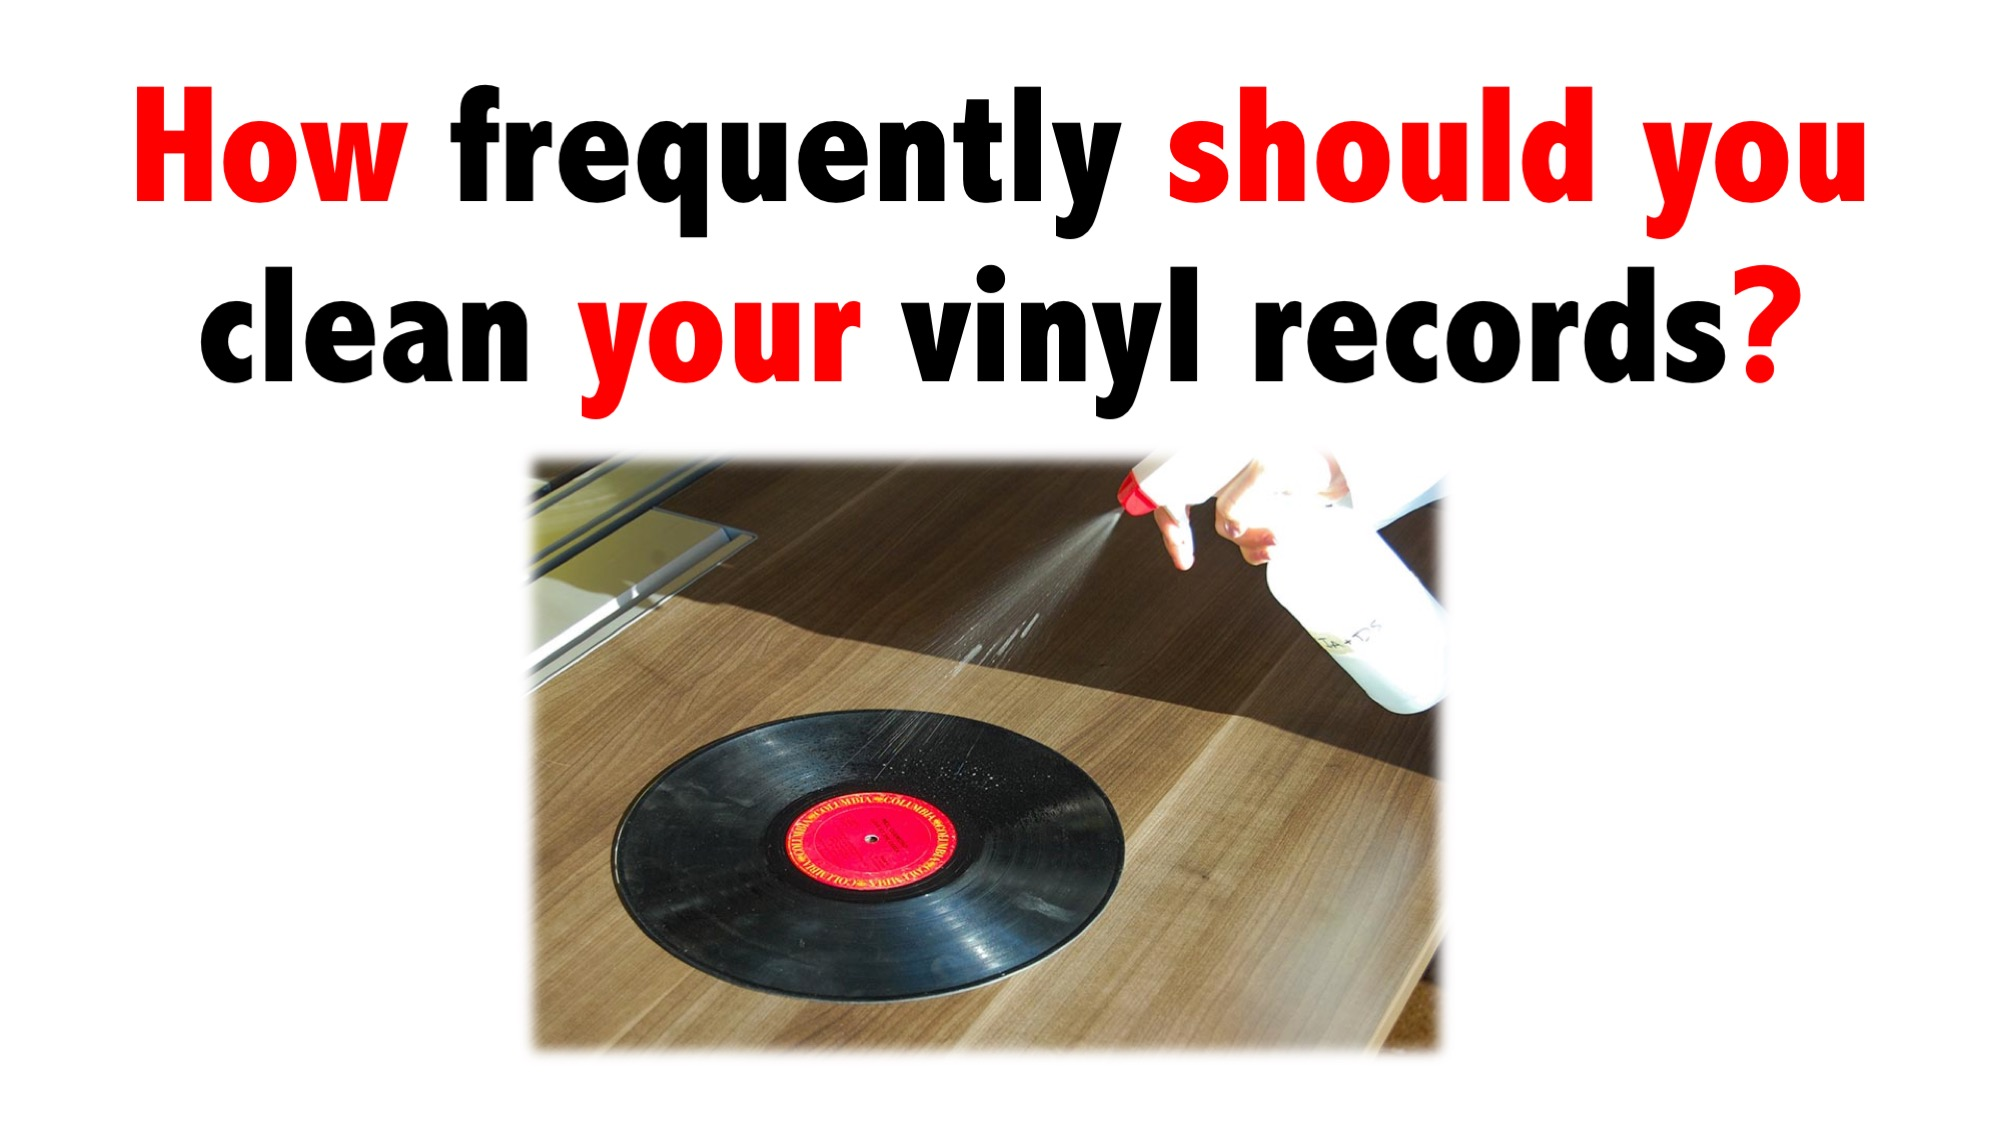 How frequently should you clean your vinyl records?